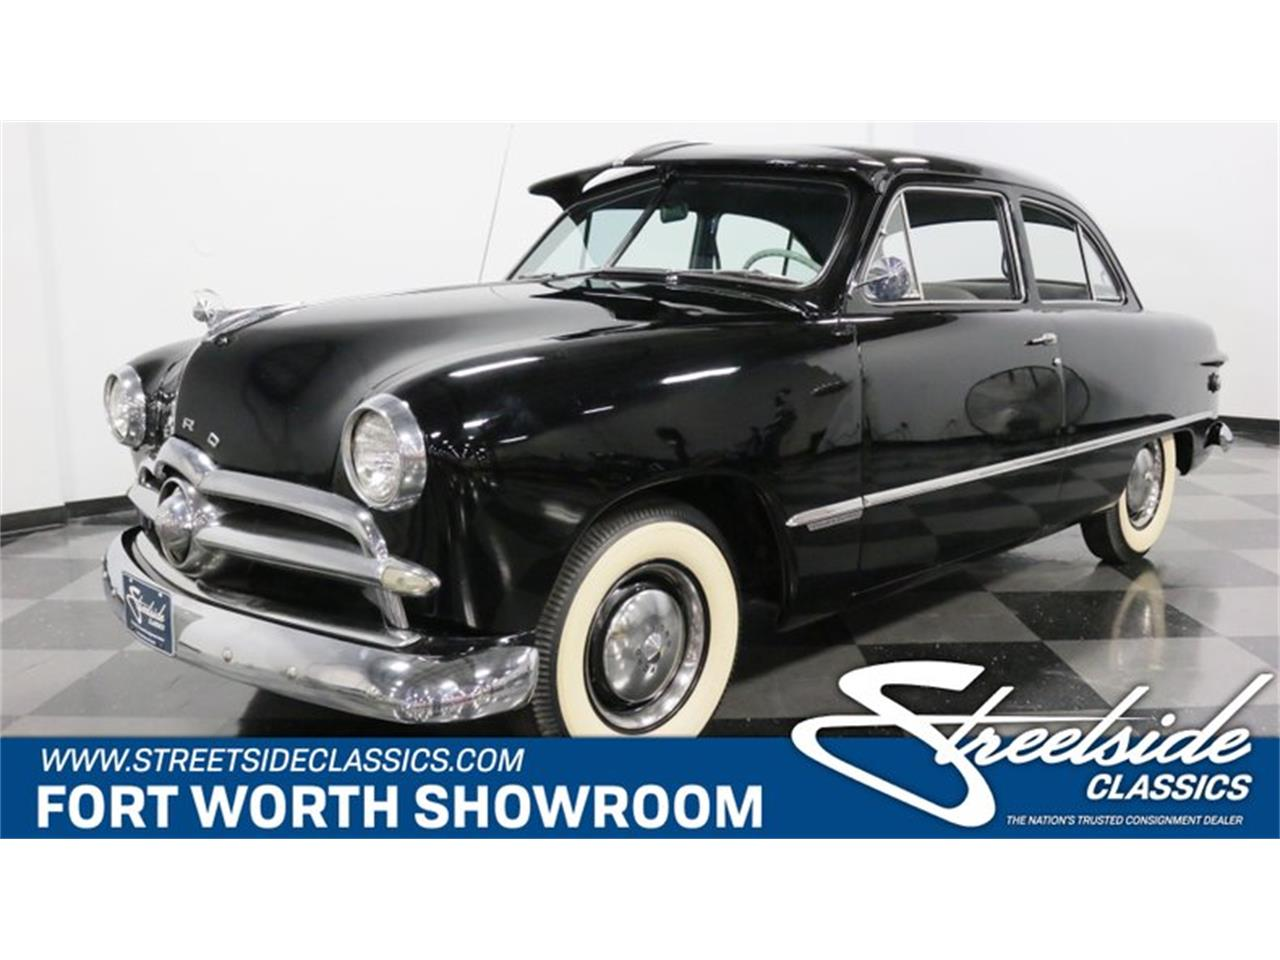 For Sale: 1949 Ford Custom in Ft Worth, Texas